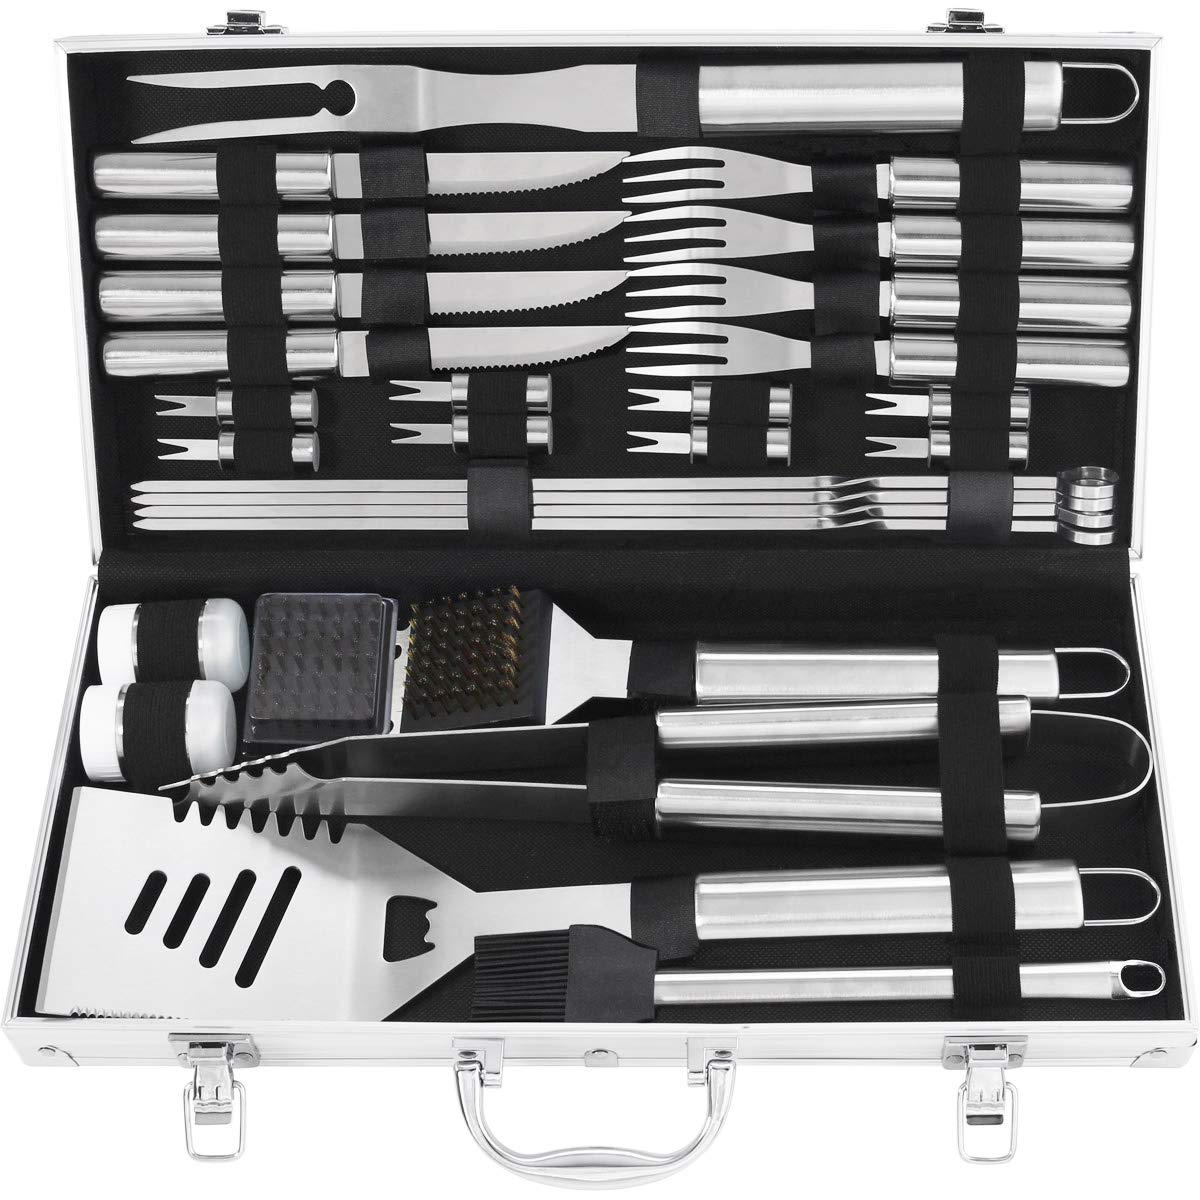 grilljoy 29PCS BBQ Grilling Tools Set - Heavy Duty Stainless Steel Grilling Accessories with Barbecue Storage Case for Travel/Camping/Kitchen. Perfect BBQ Grill Utensil Gifts for Men Women on Birthday by grilljoy